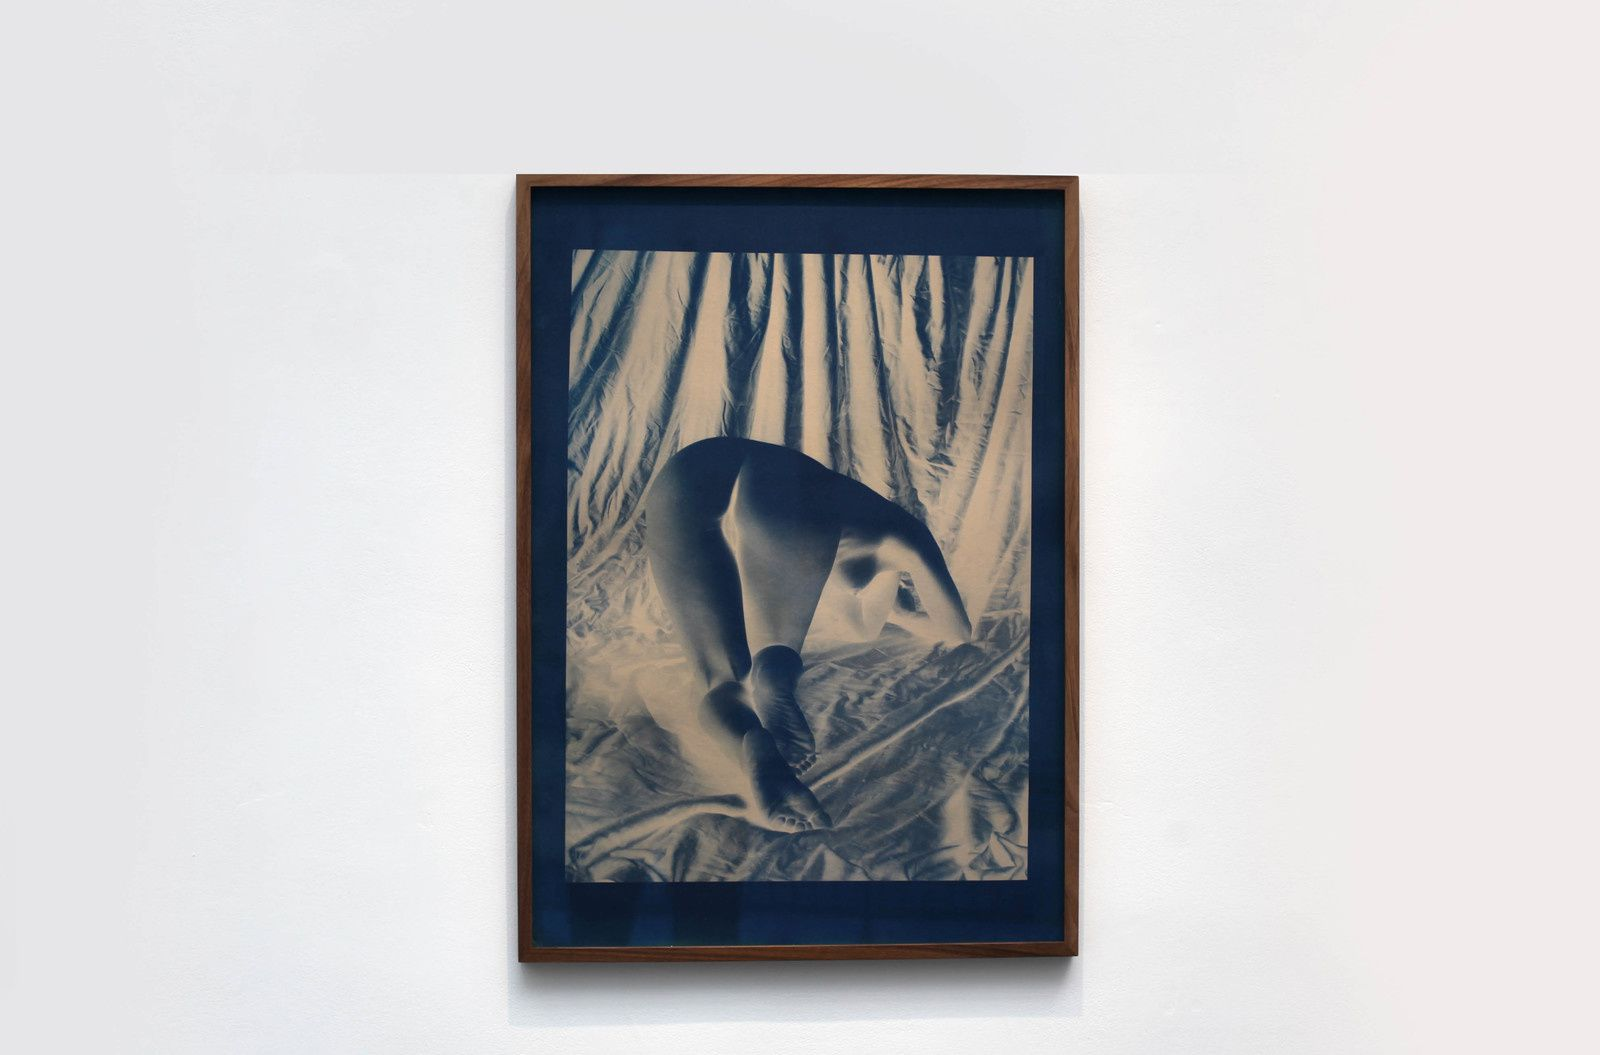 "Cyanotypes ""Untitled from heavy the sea"", 2016 de Esther TEICHMANN - Courtesy Galerie Les filles du calvaire © Photo Éric Simon"